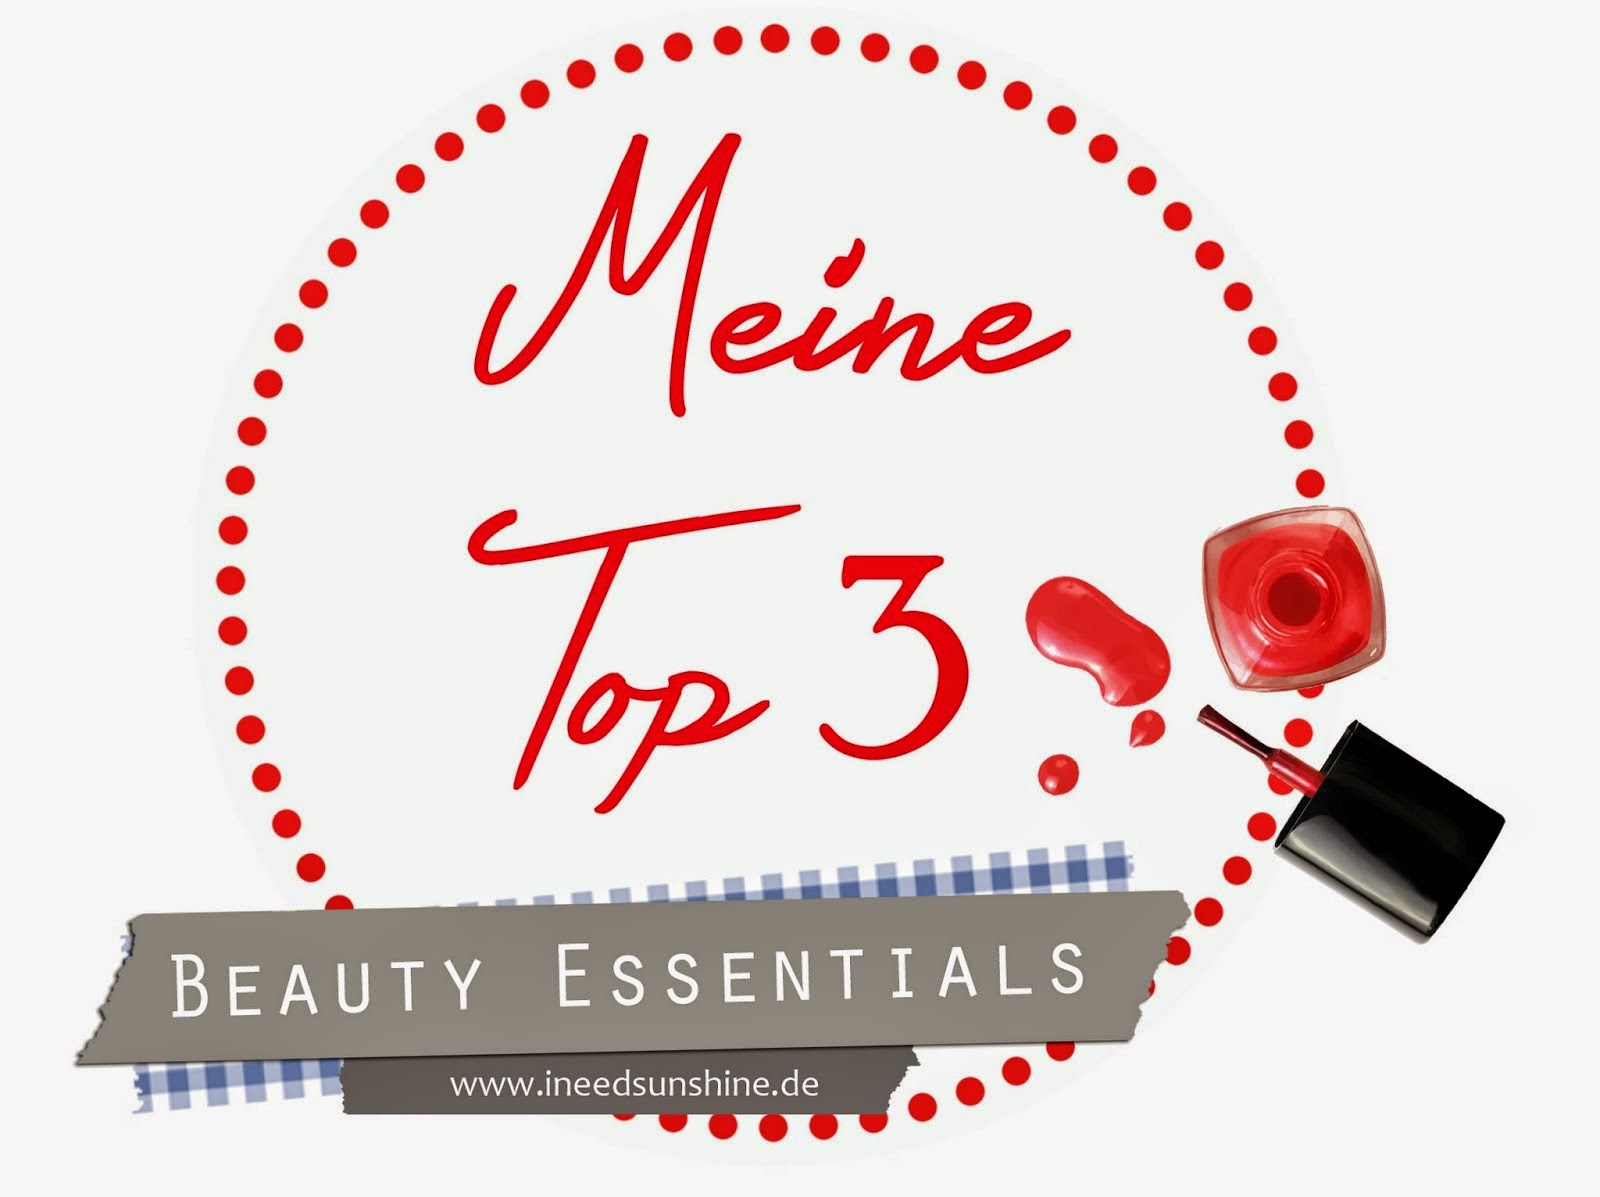 http://www.ineedsunshine.de/2015/01/Meine-Top-3-Beauty-Essentials-fuer-ein-schnelles-Make-up.html#more